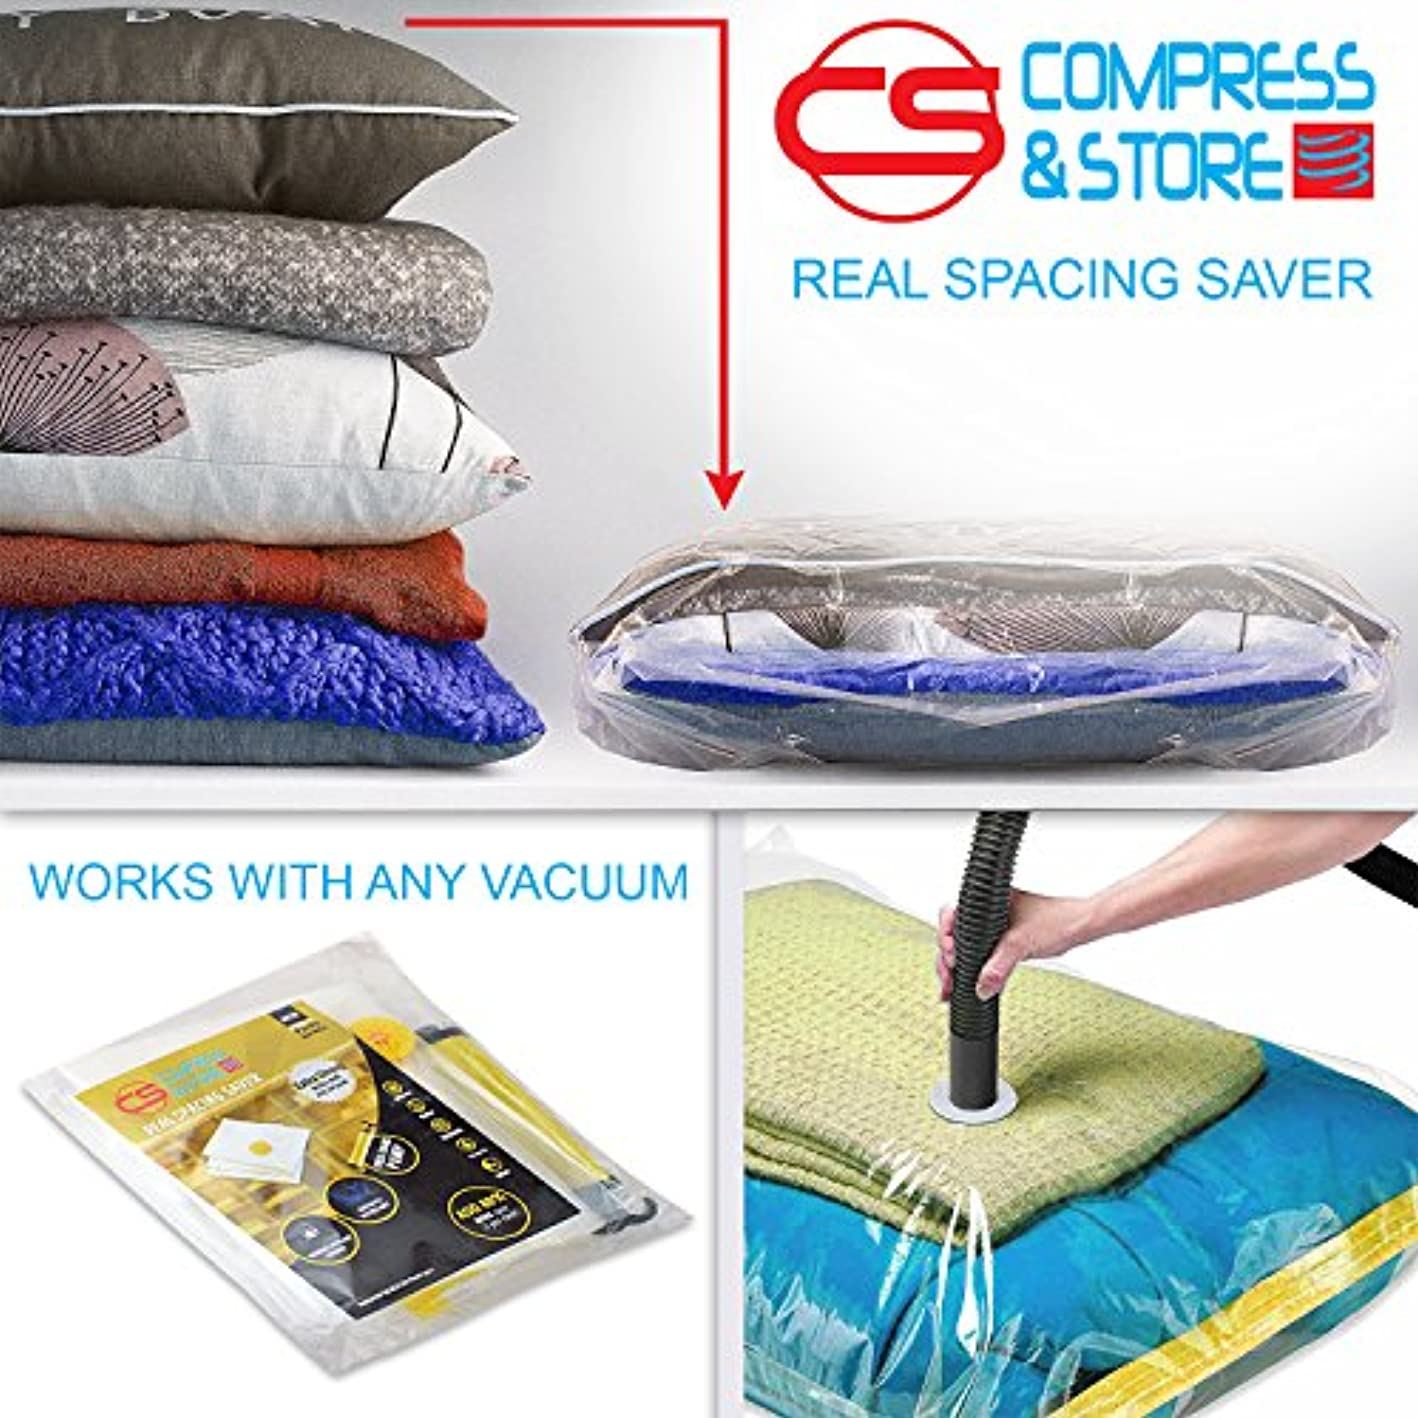 Compress & Store 30x40 Inch JUMBO - Superior Seals Vacuum Storage Bags (80% More Storage Than Leading Brands) Free Hand Pump For Travel! (5 Pack)